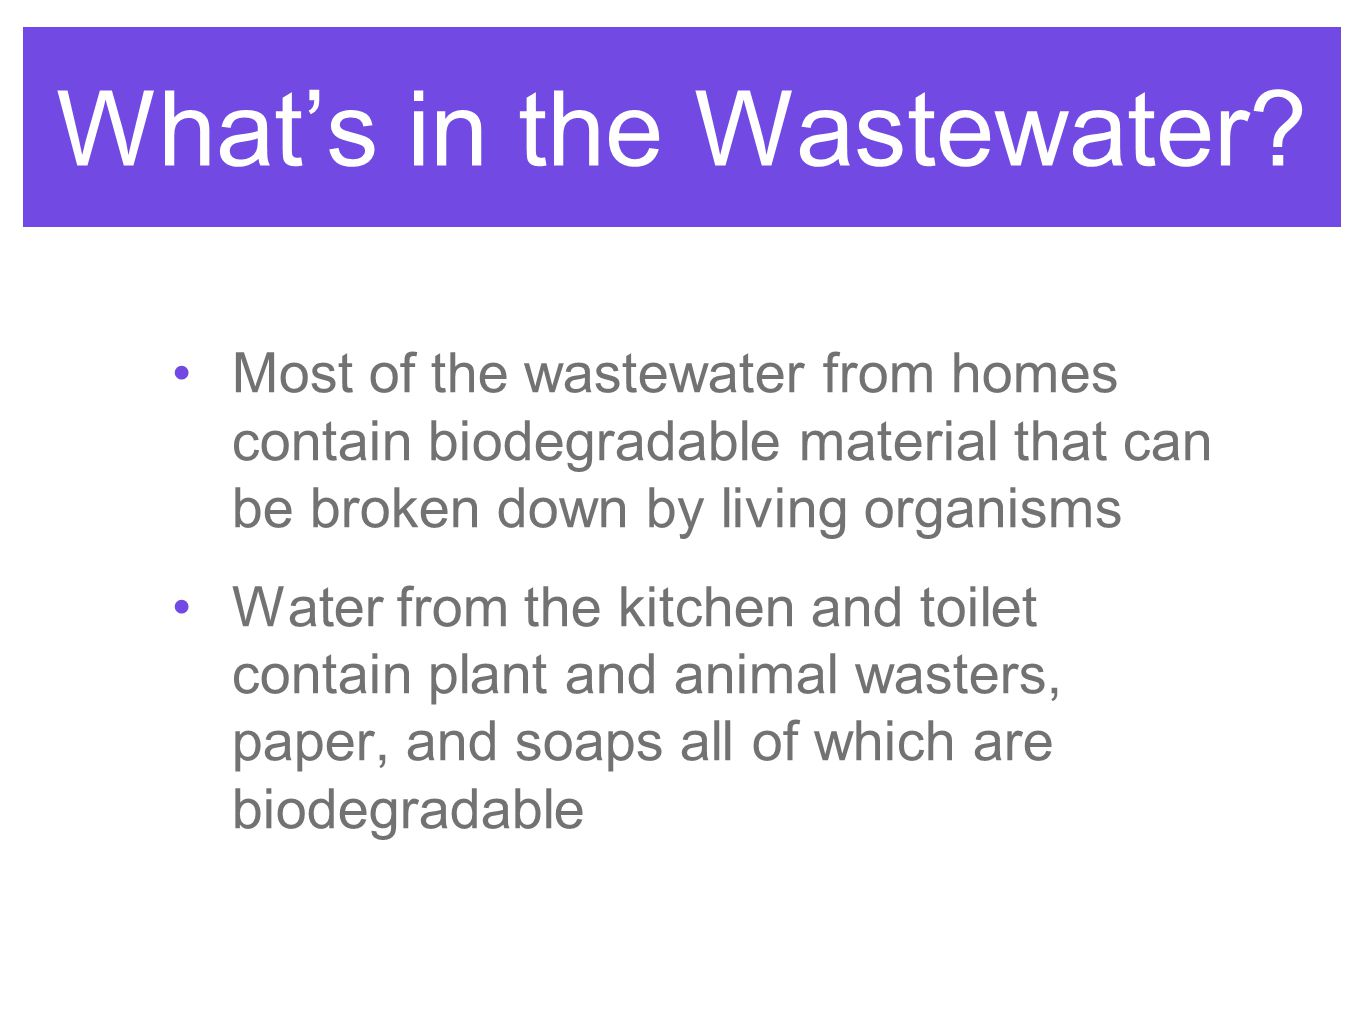 What's in the Wastewater